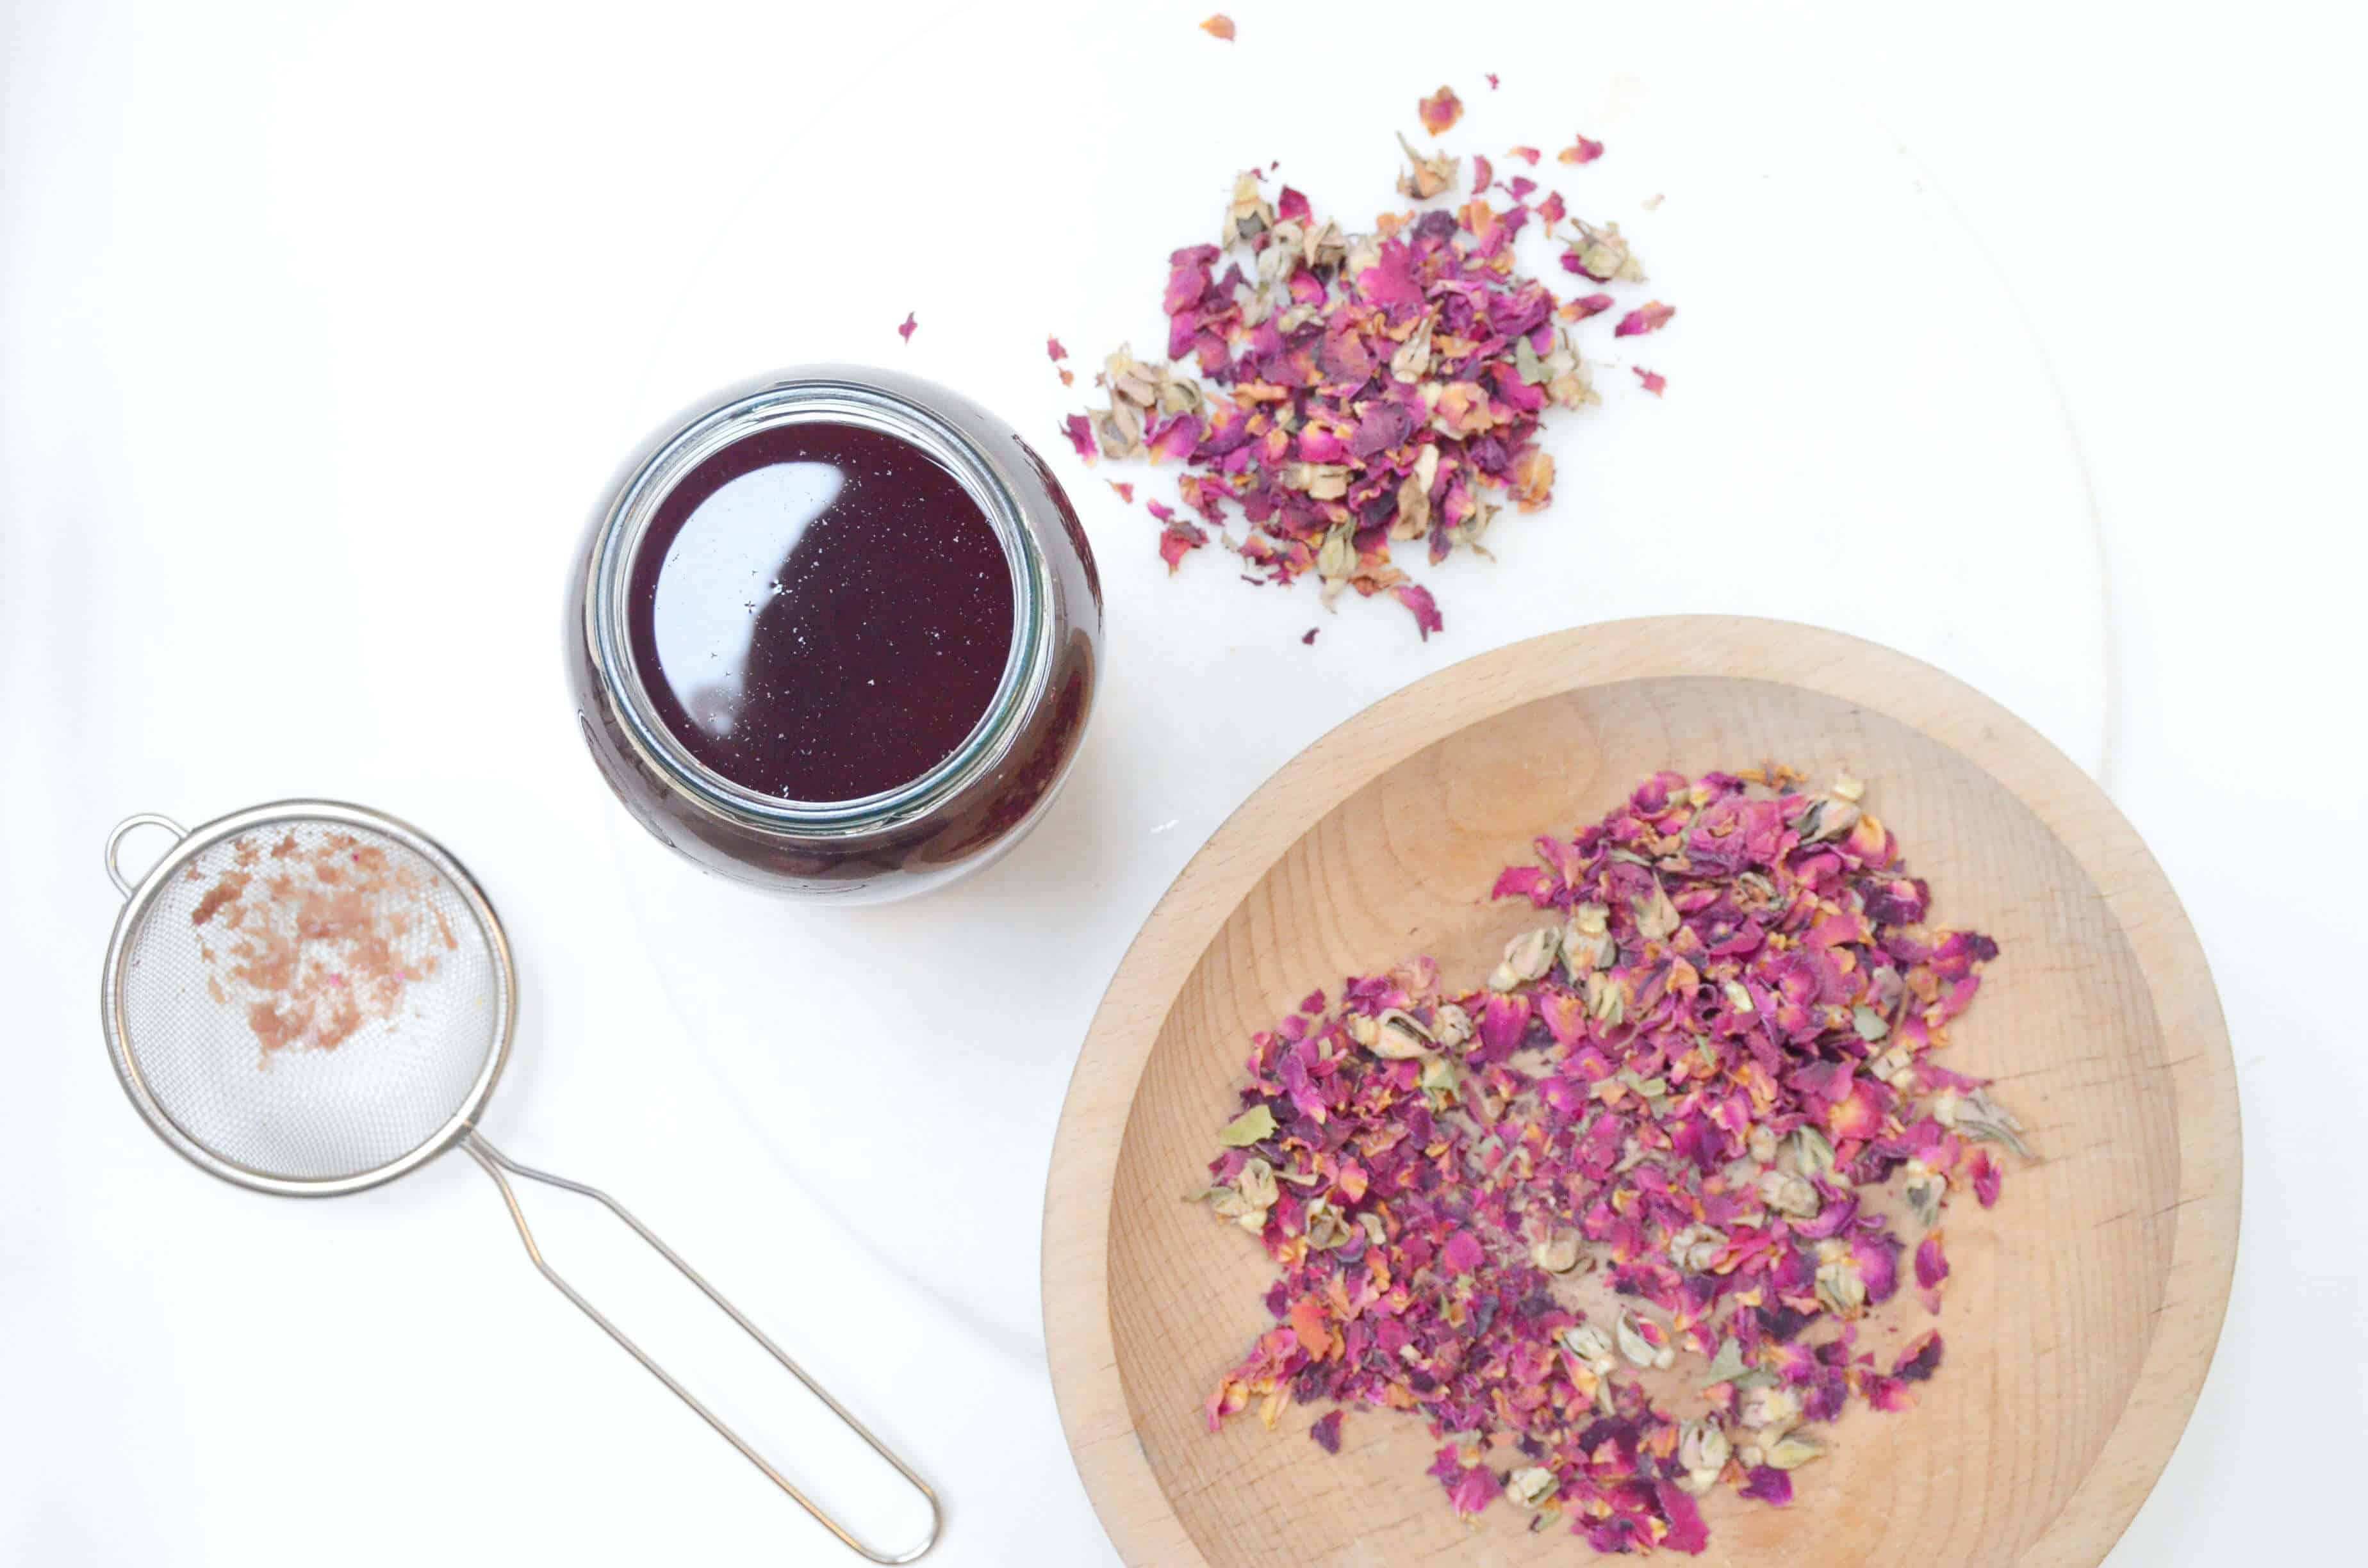 overhead view of flower petals in wood bowl, pile on table and sifter